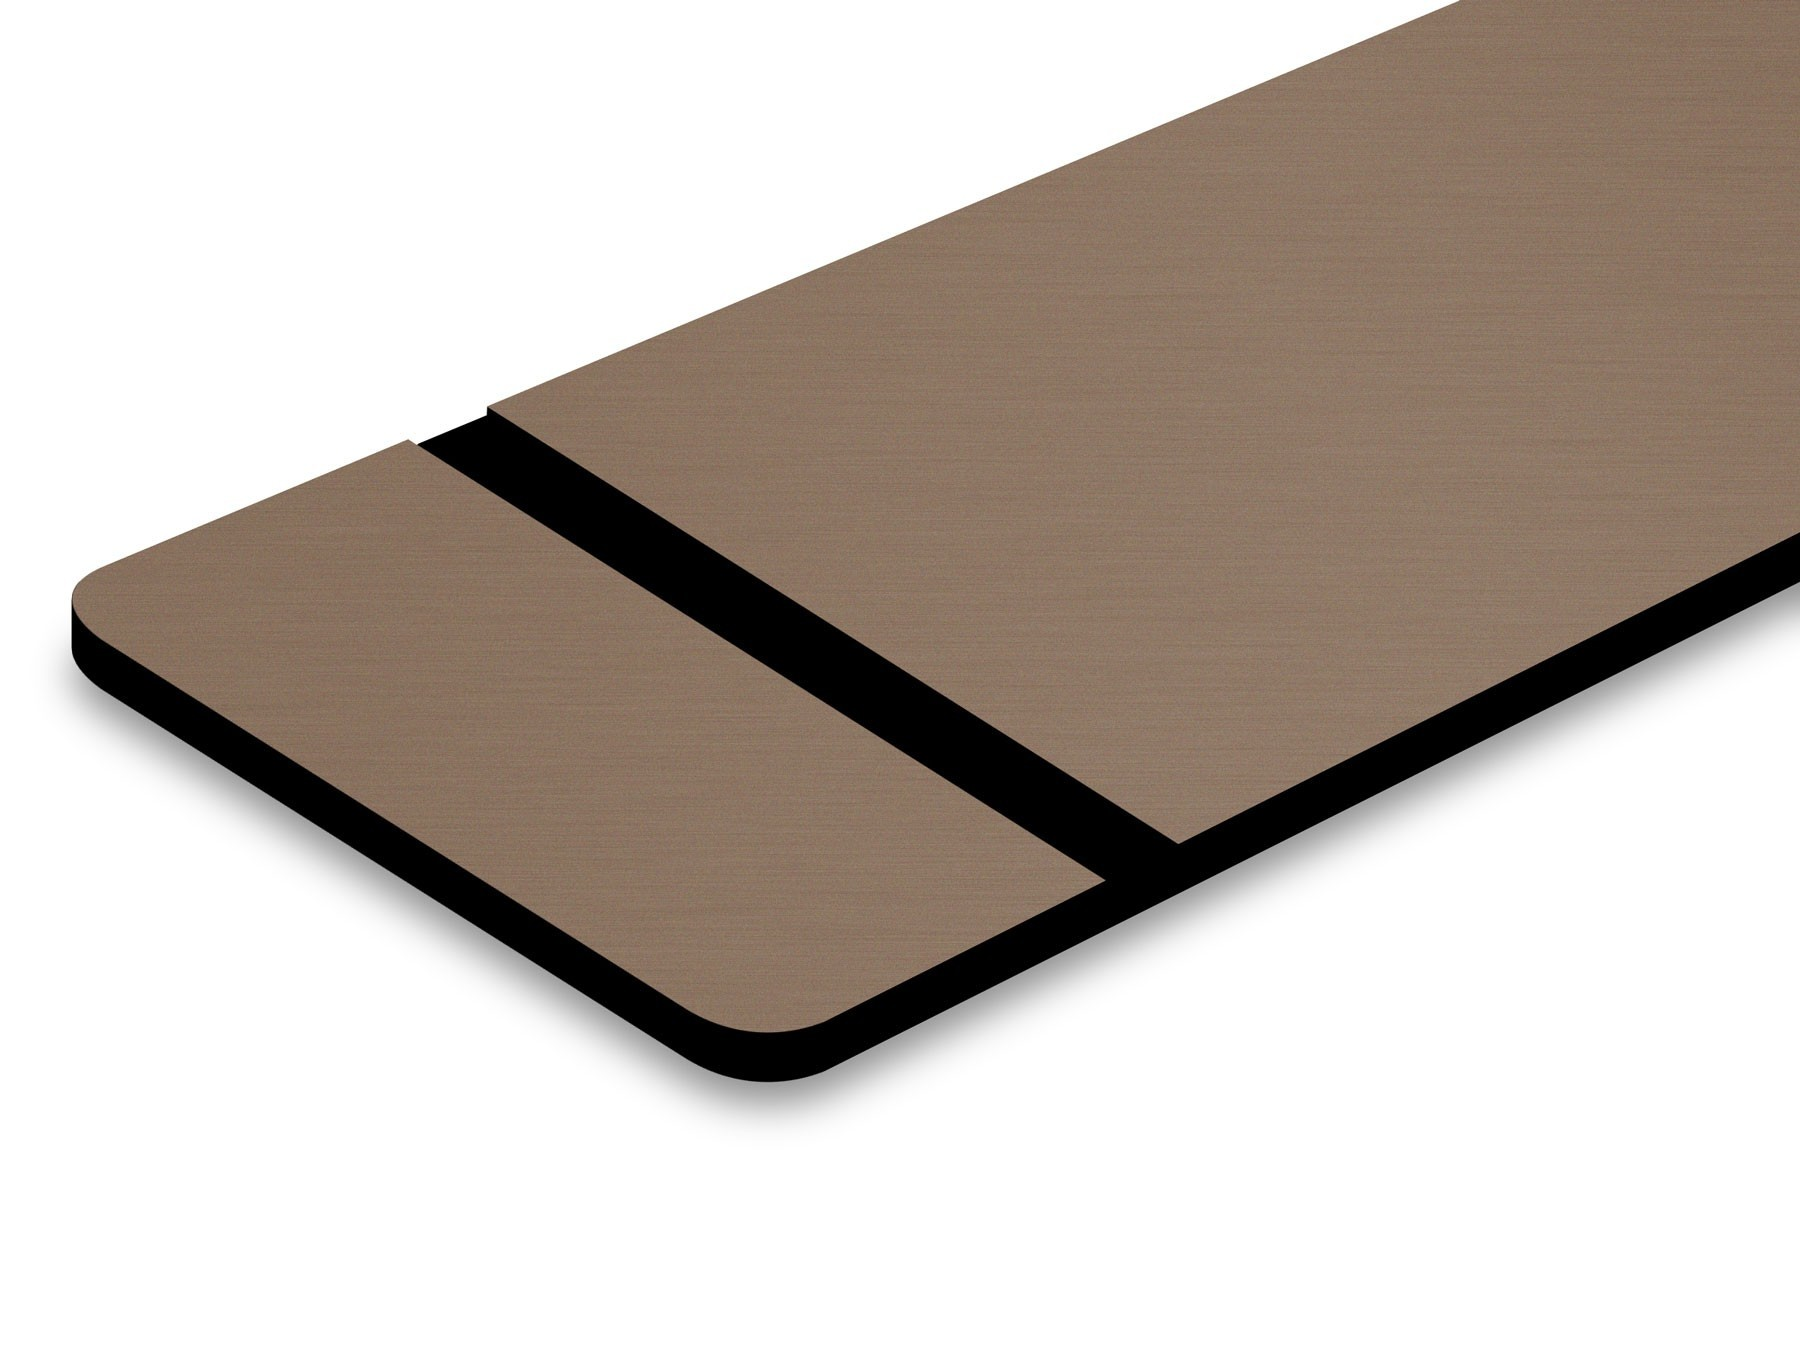 TroLase Metallic, Deep Bronze/Black, 2ply, 1.6 mm